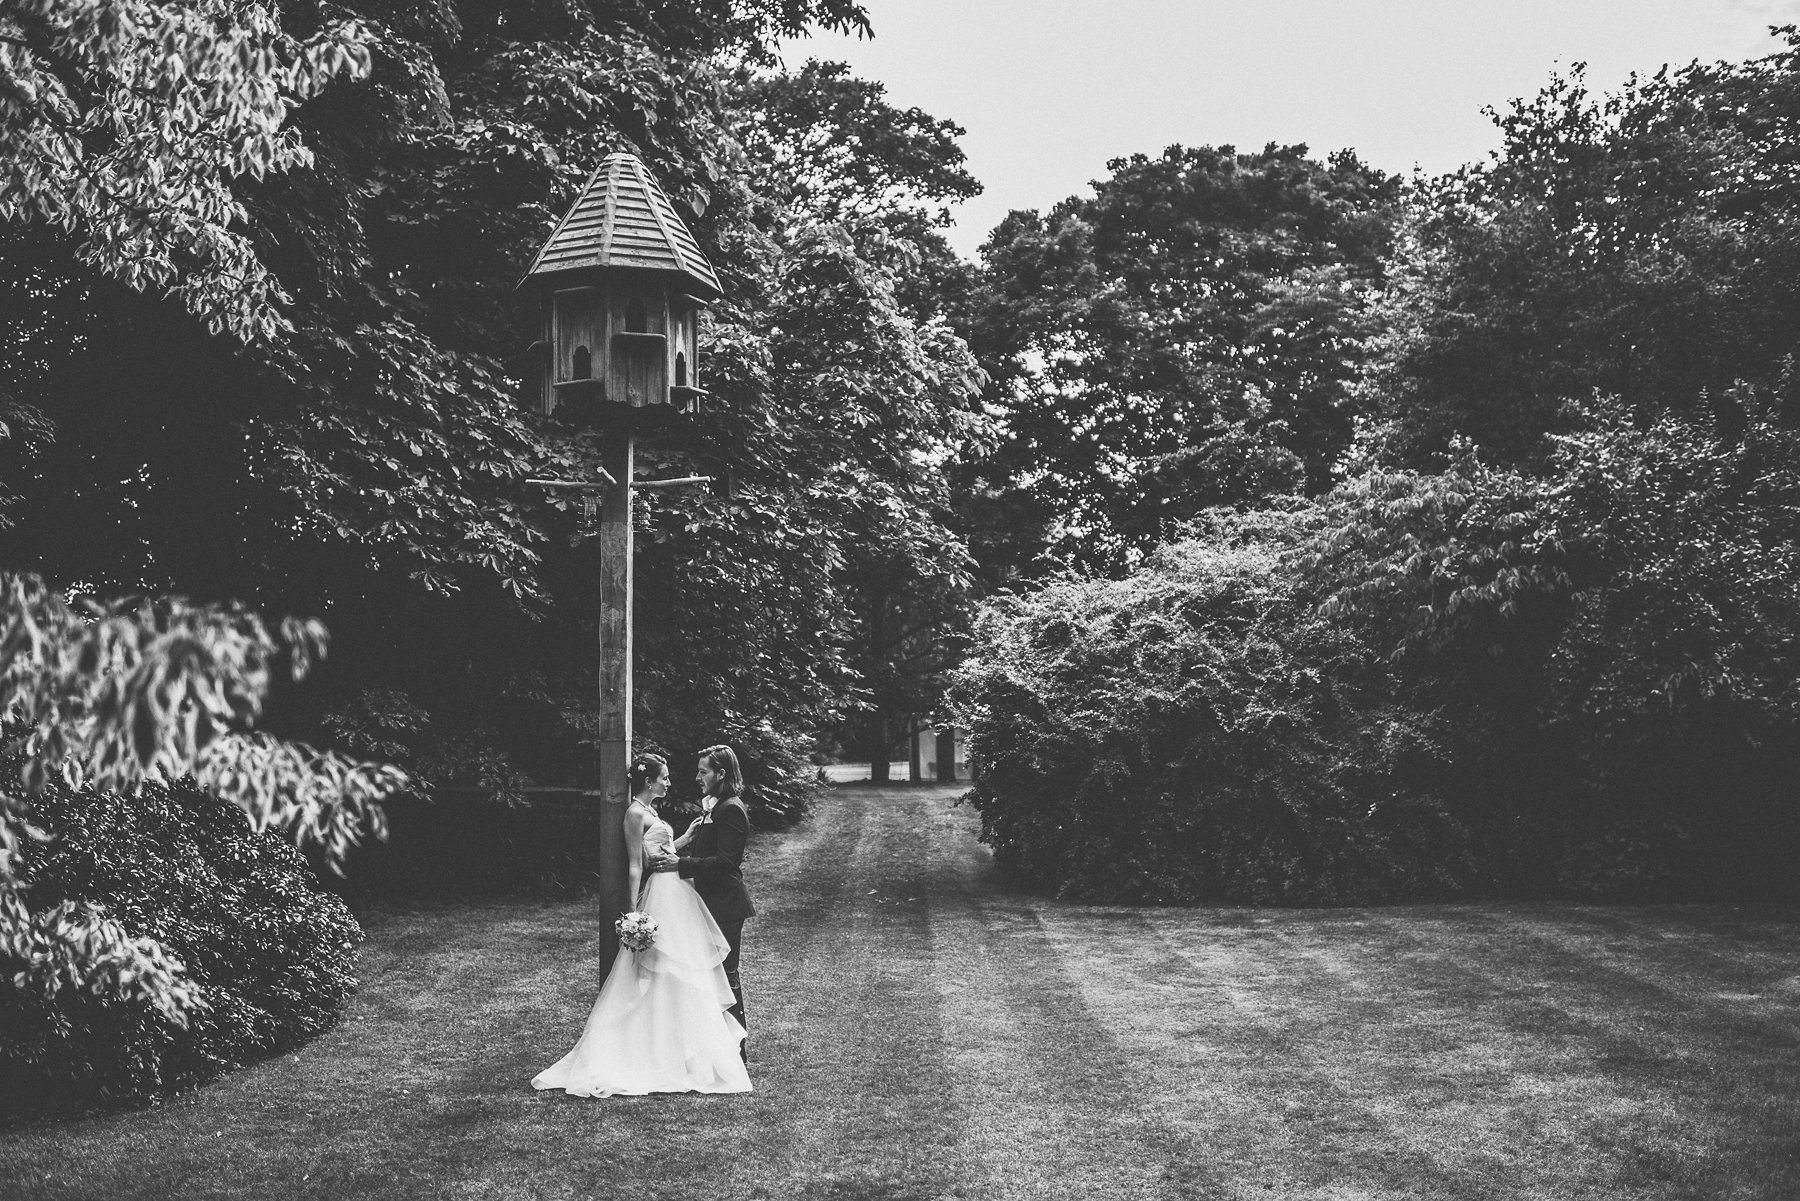 Bride and groom leaning against the bird house at their Glamorous wedding at Hurlingham Club in Chelsea London